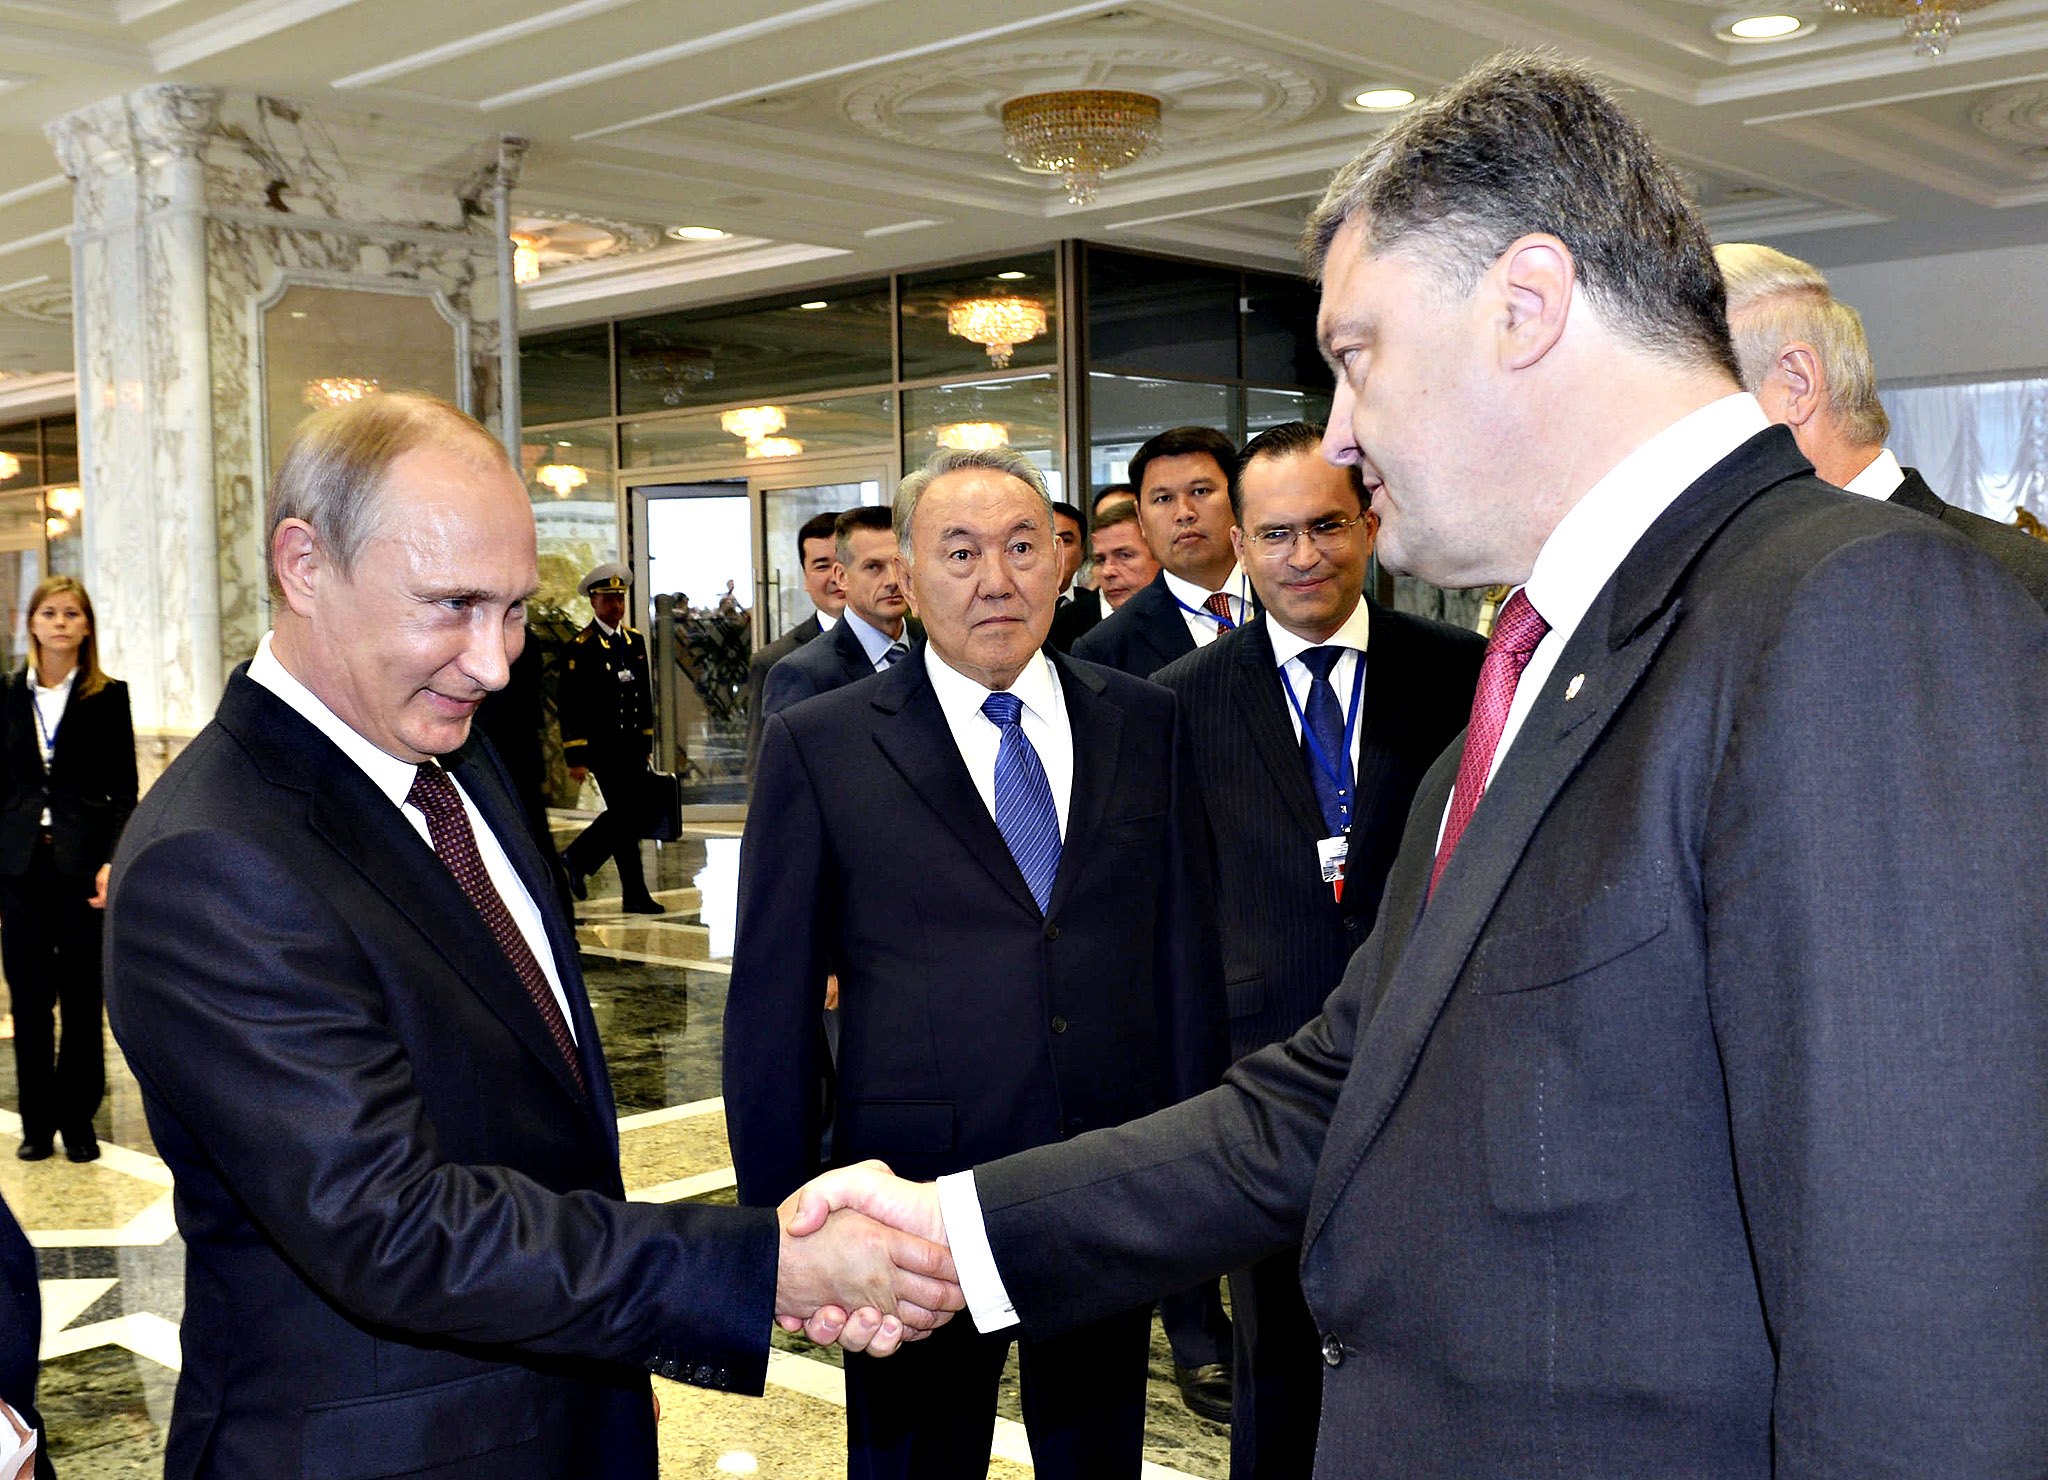 Russian President Vladimir Putin (L) shakes hands with his Ukrainian counterpart Petro Poroshenko, as Kazakh President Nursultan Nazarbayev (C) stands nearby, in Minsk August 26, 2014.